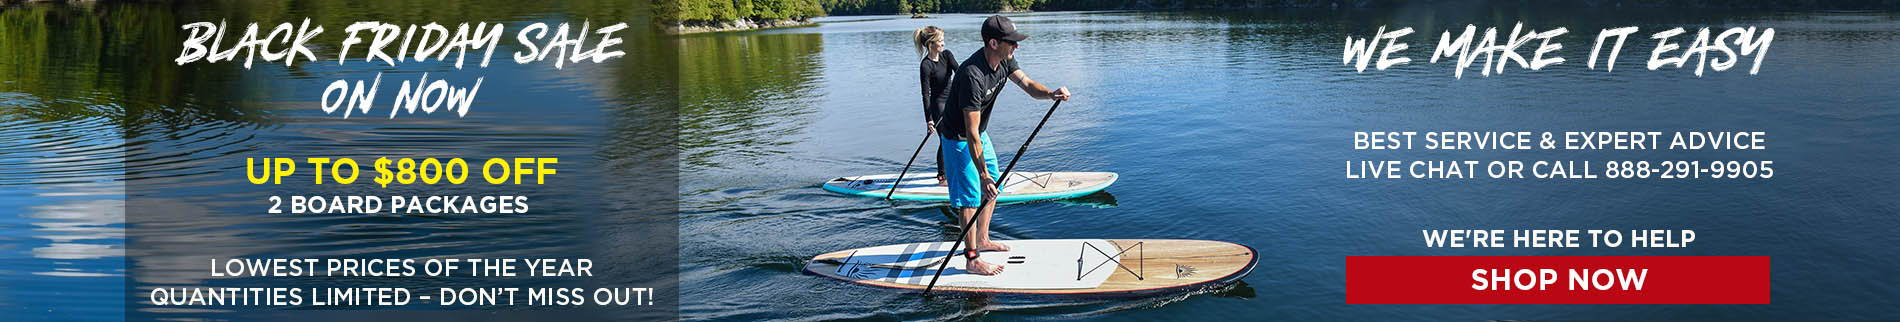 Couple Paddleboarding On Lake | Cruiser SUP Blend Ultra-Lite Wood Carbon  | Holiday Stand Up Paddle Board Sale